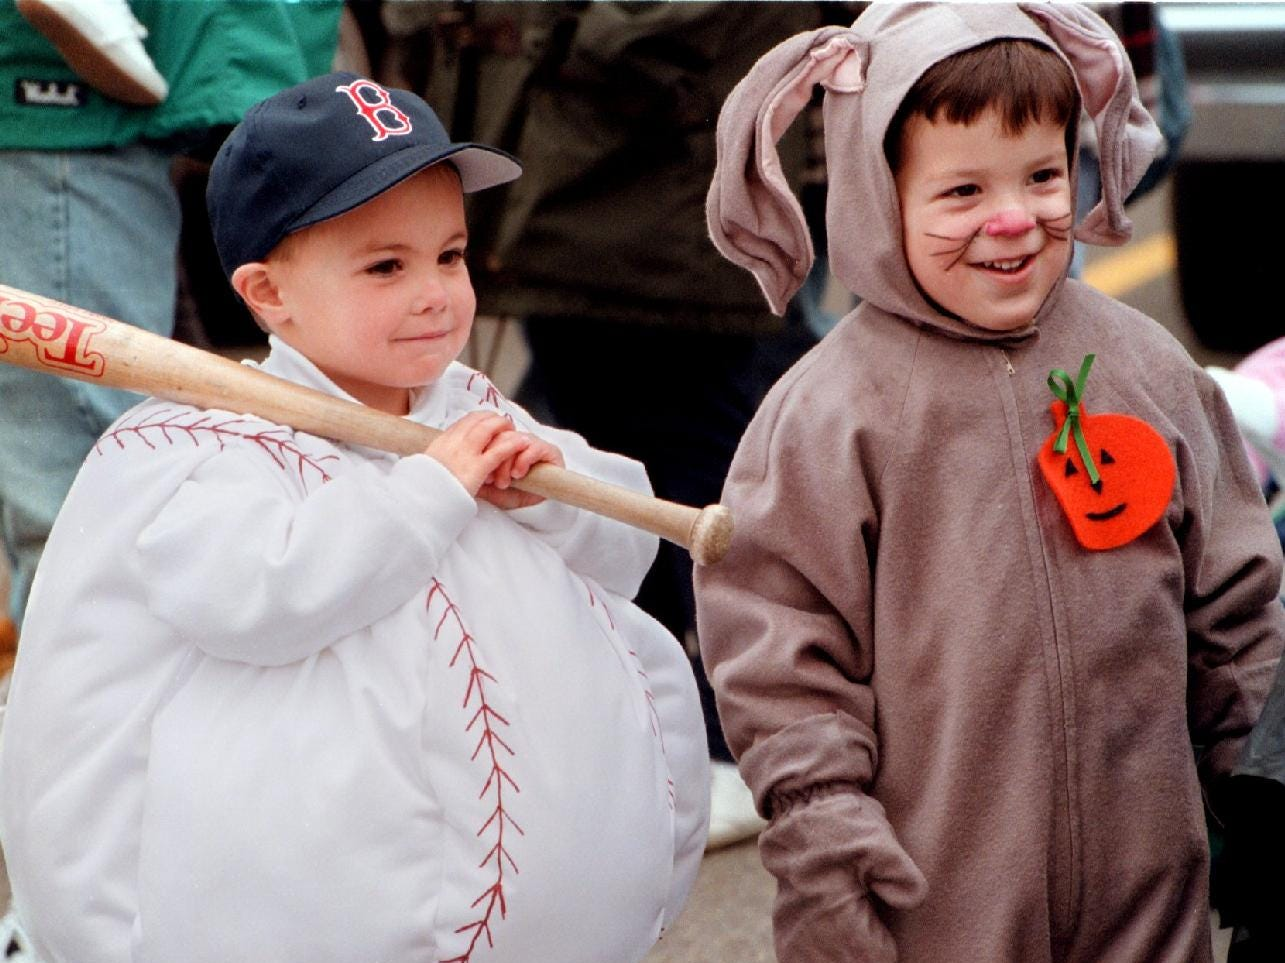 1997: Sean Barrett, 3, and his friend Christopher Carlini, 3, both of Endwell, perpare to march in the annual Town of Union Halloween parade in Endwell Sunday afternoon.